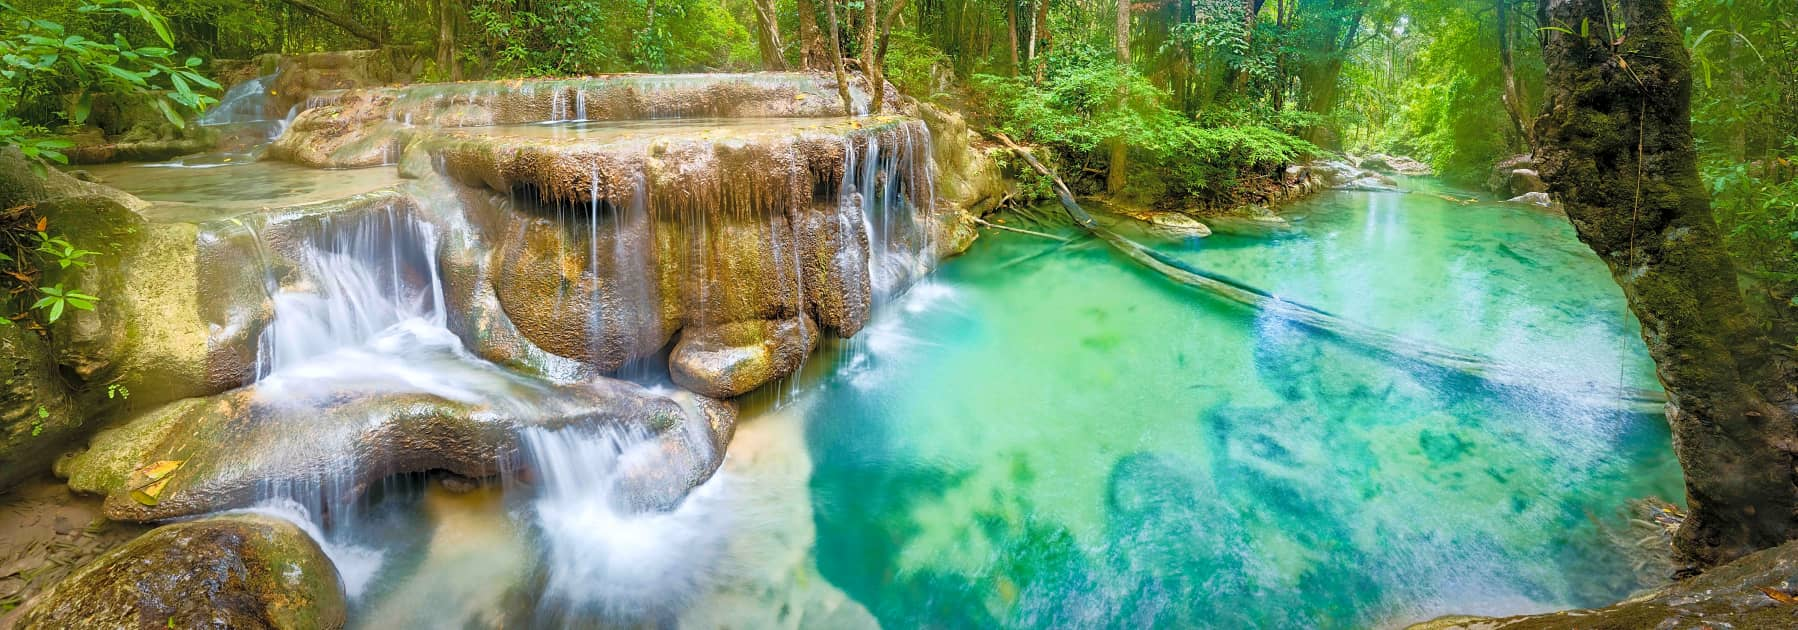 Erawan National Park Small Group Tour: Erawan Waterfall and Bridge over the River Kwai – Full Day gallery